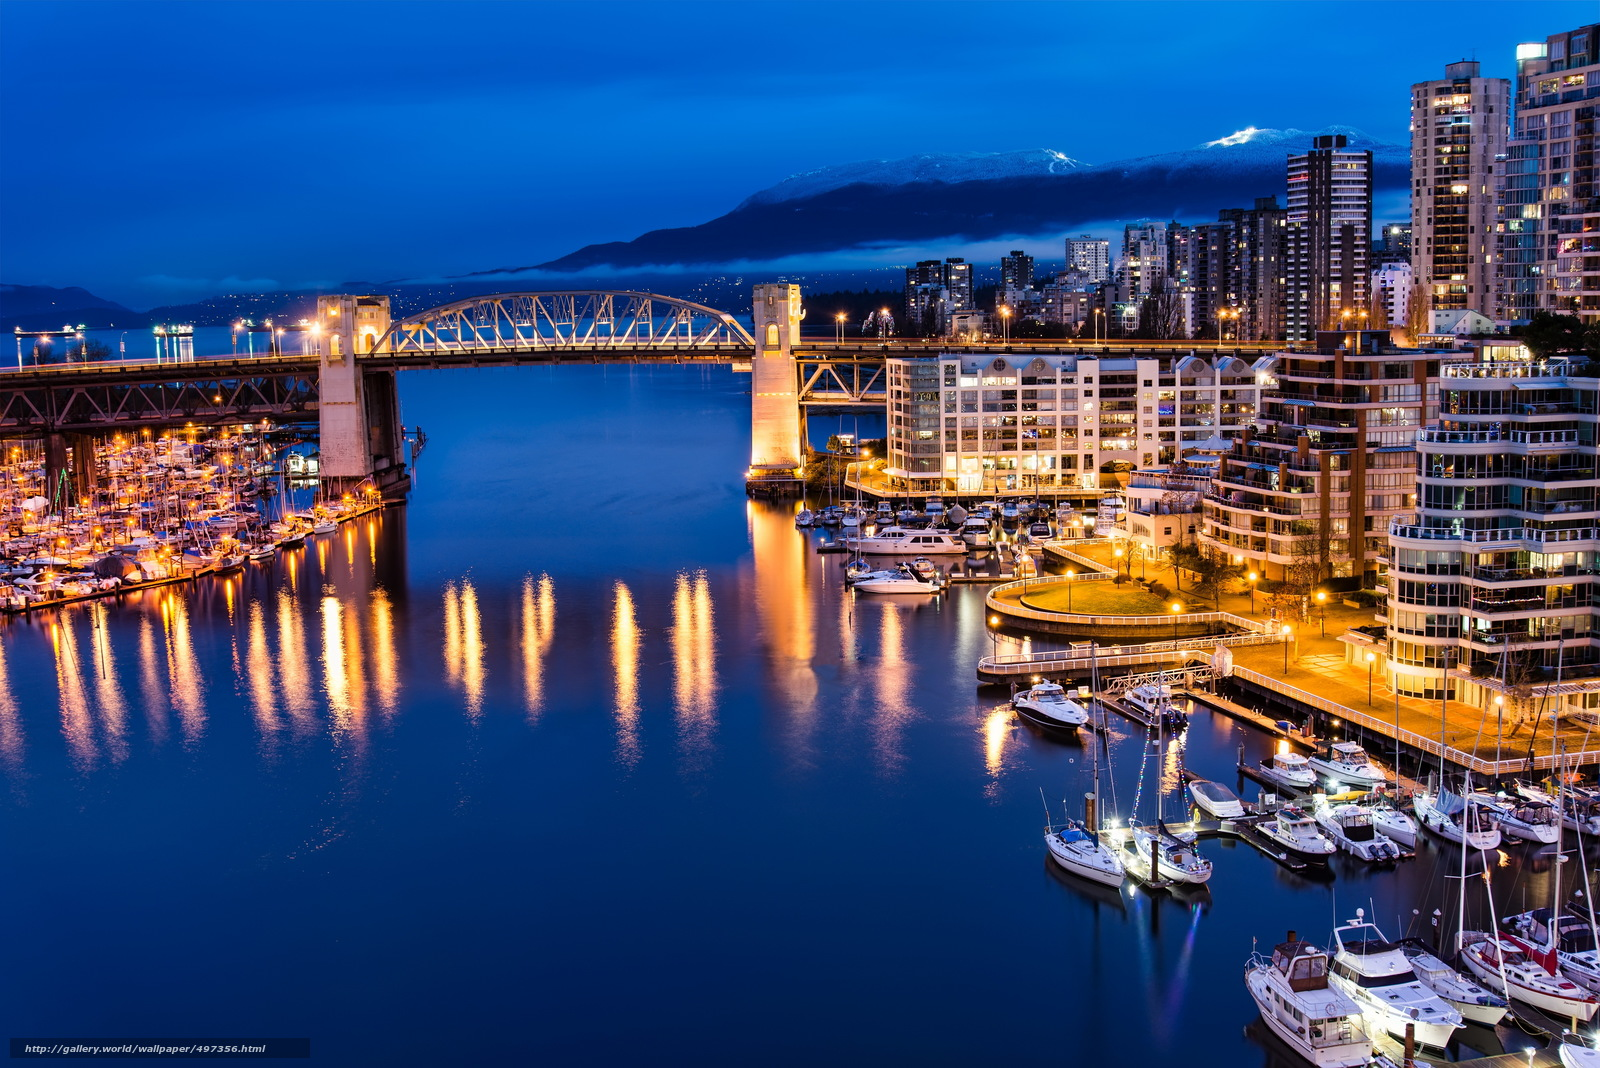 Download wallpaper canada vancouver cities night free for Home wallpaper vancouver